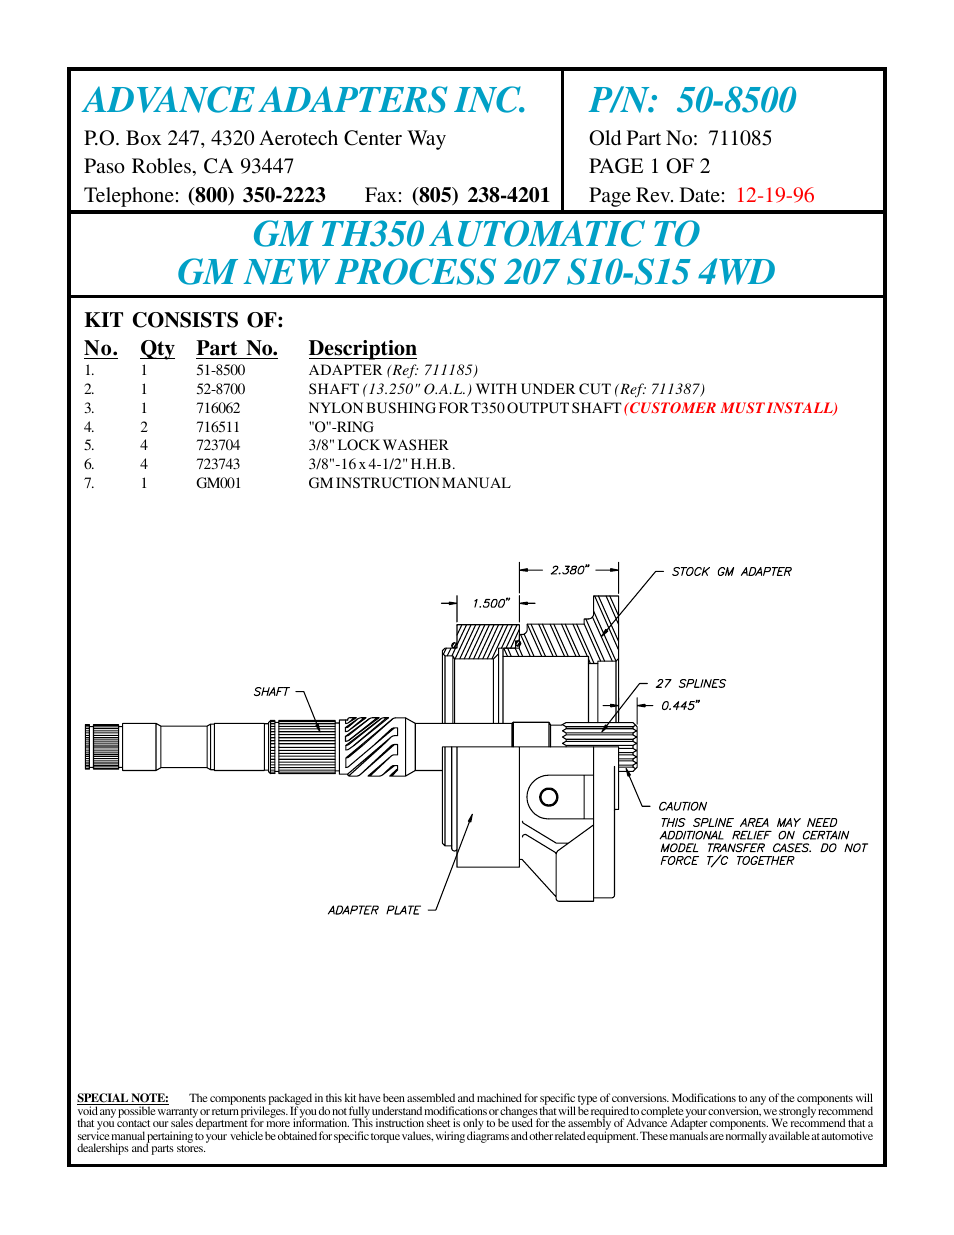 Advance Adapters 50 8500 User Manual 2 Pages Th350 Wiring Diagram